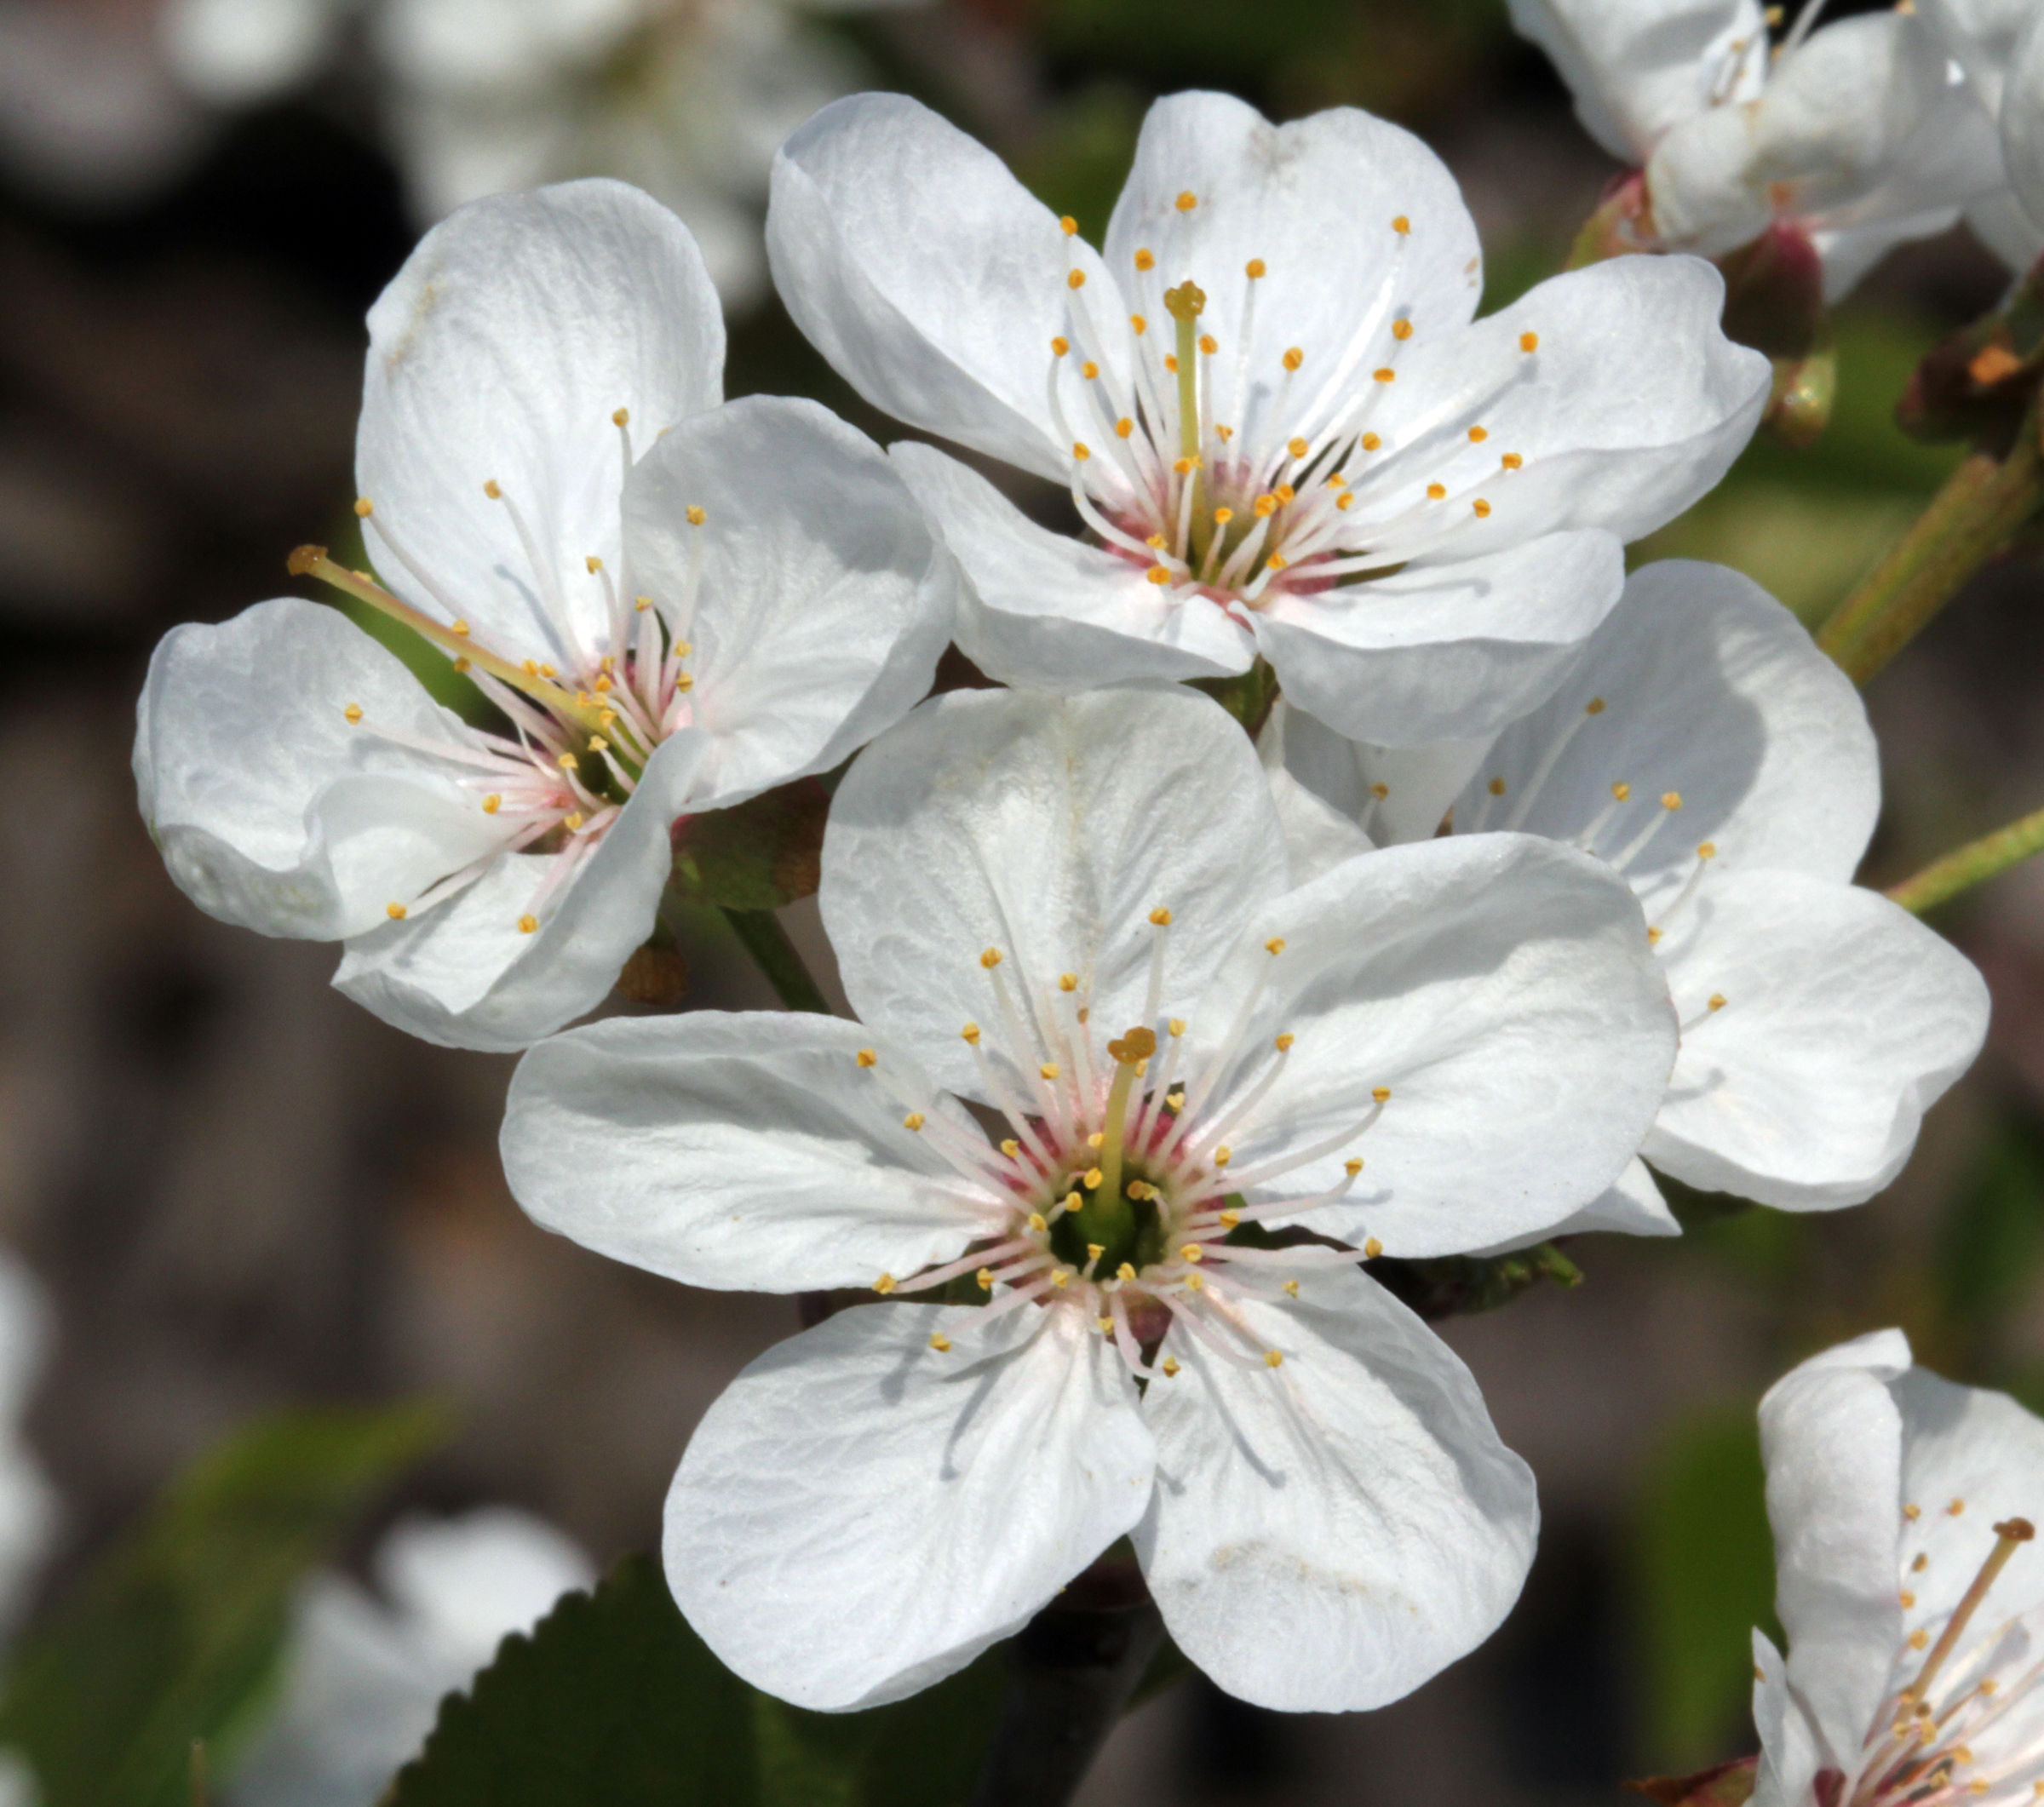 Close-up-flower-of-Sour-cherry